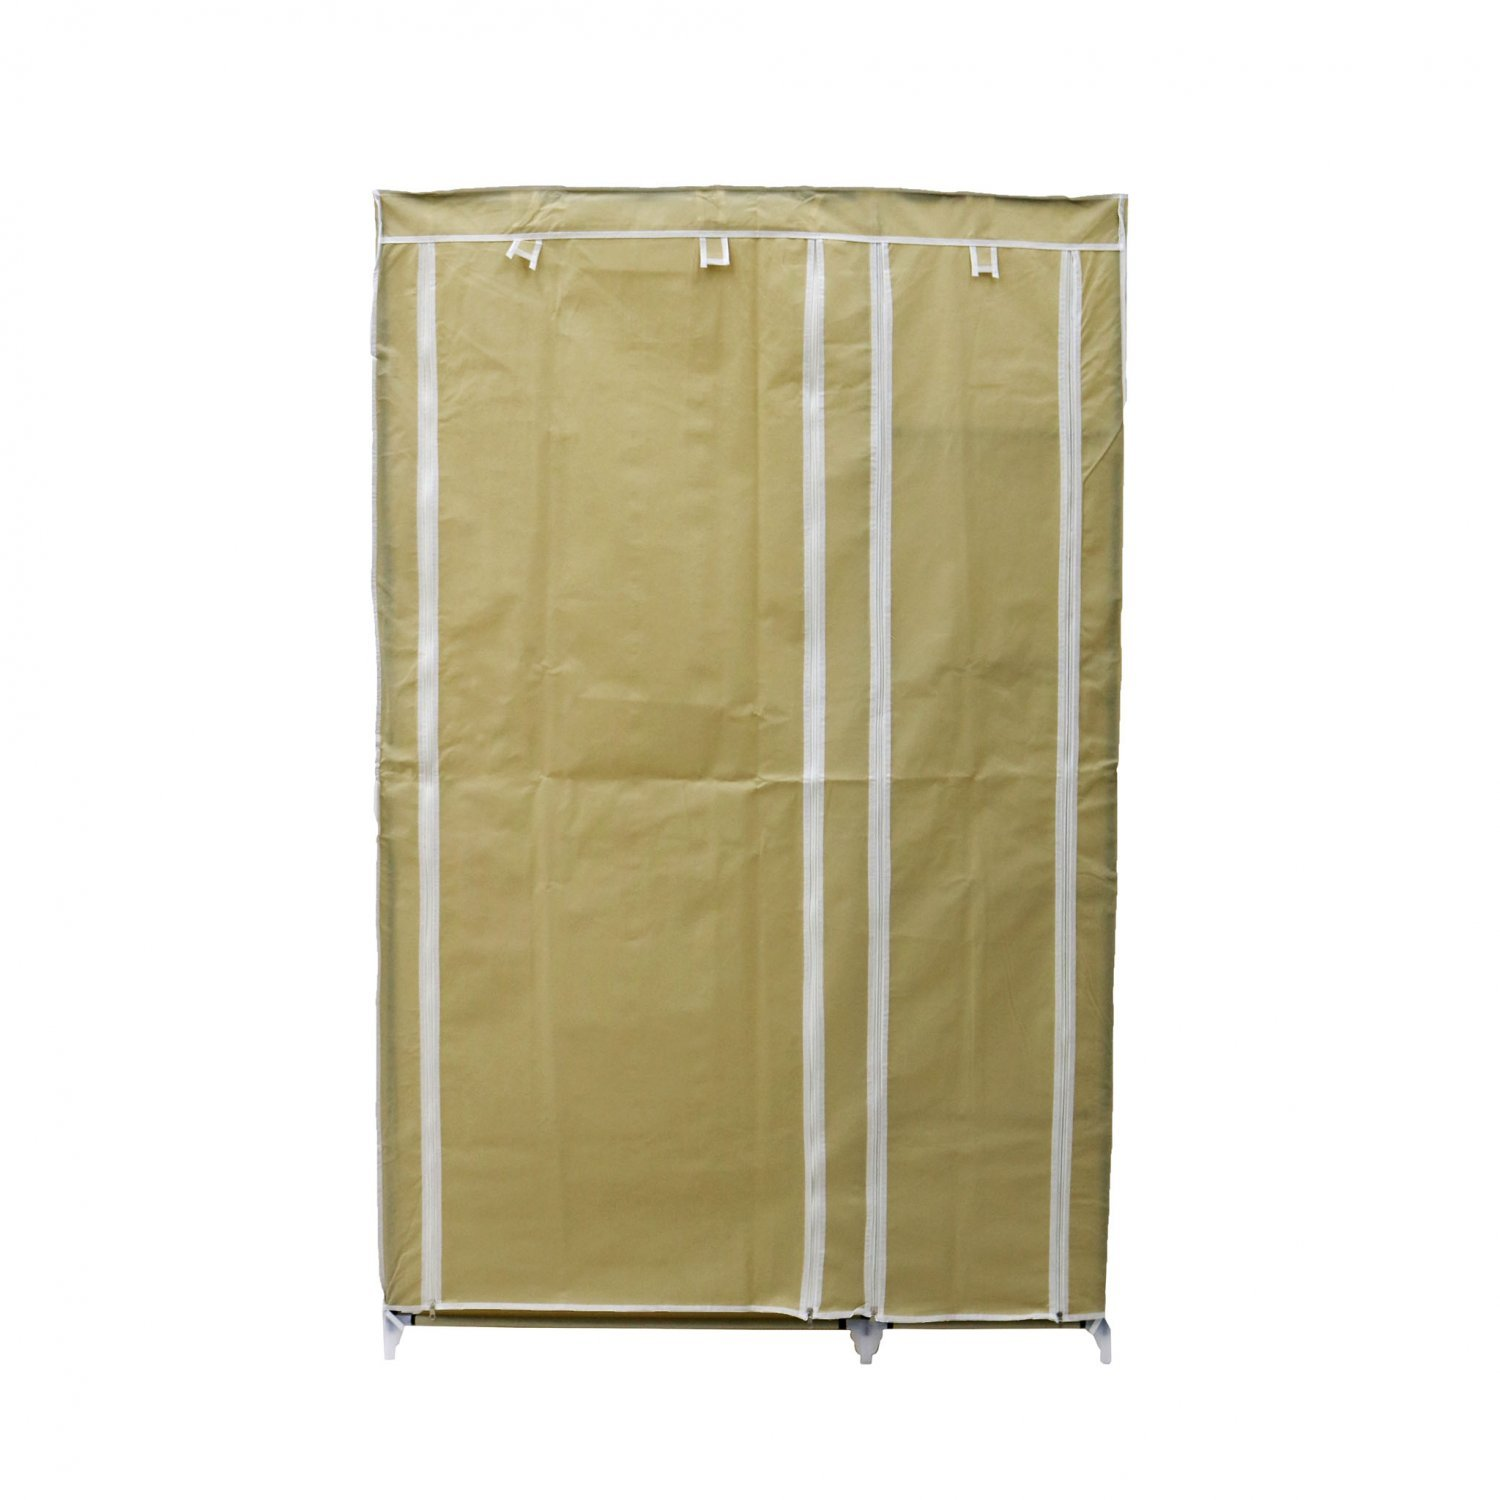 Double Cream Canvas Wardrobe Clothes Rail Hanging Storage